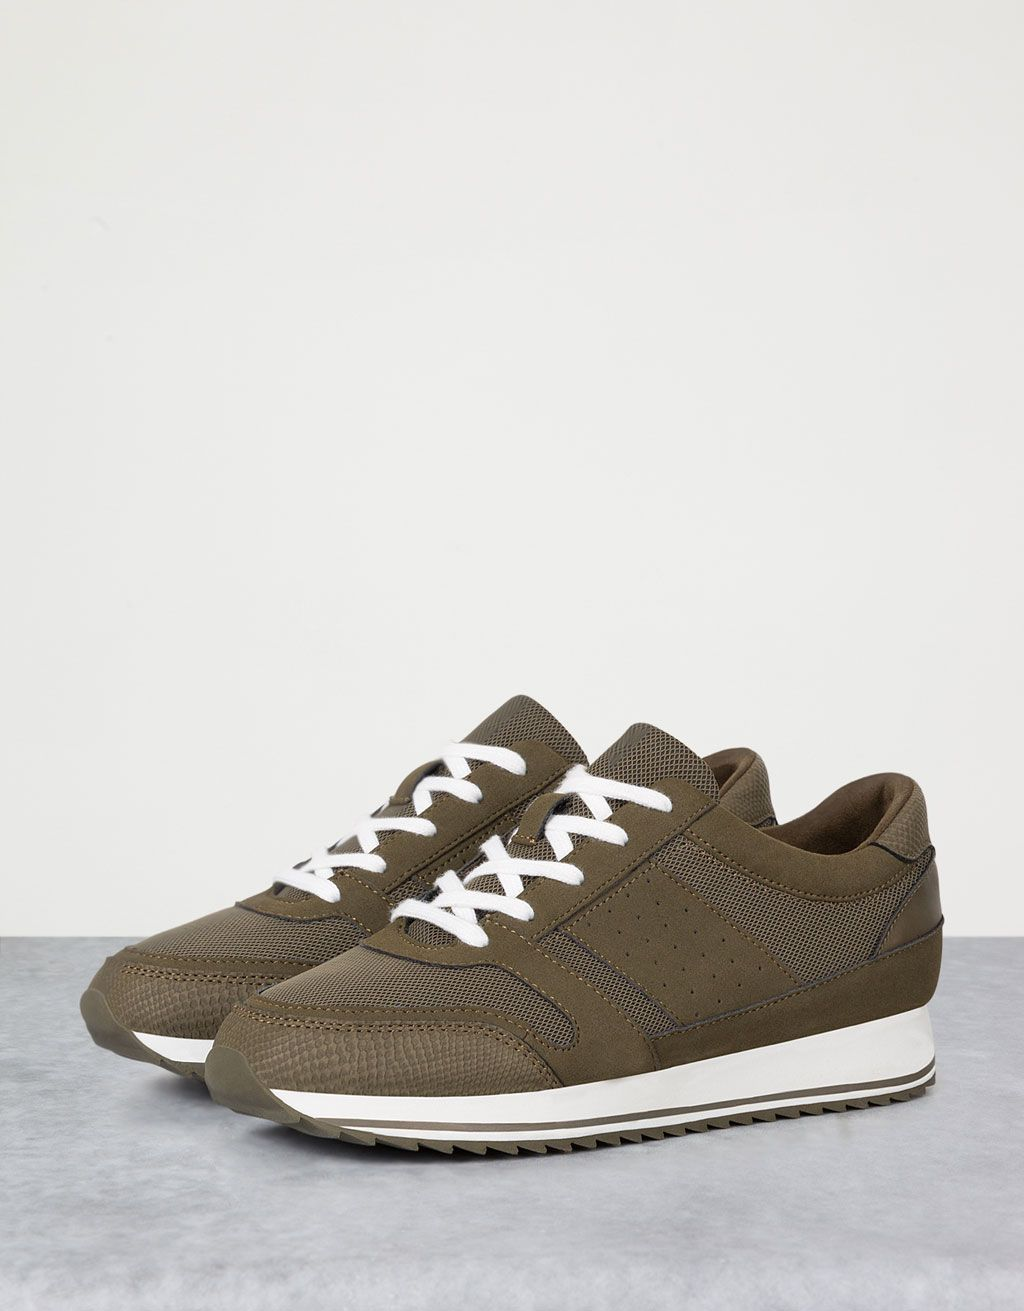 Bershka Serbia - Combined sole sports shoes